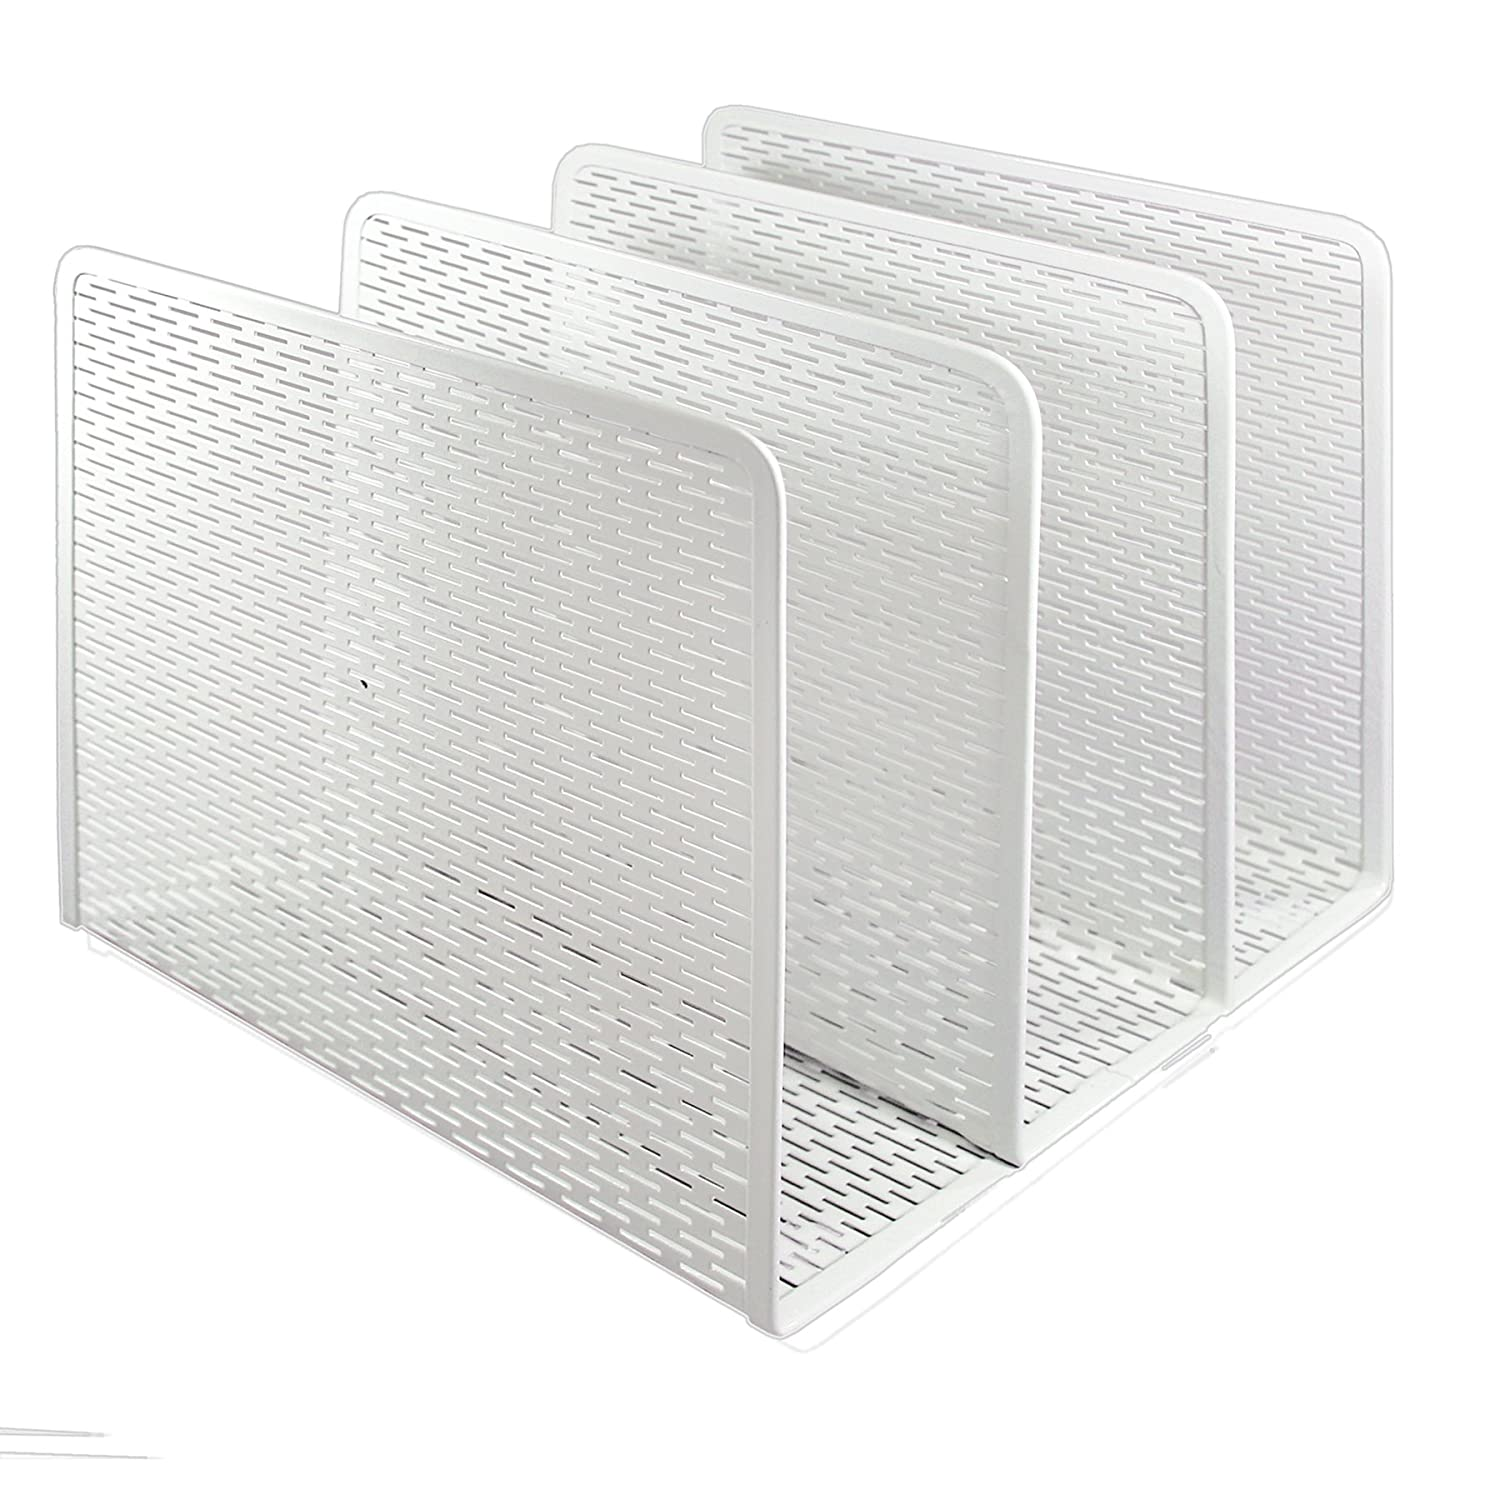 Artistic ART20009WH Urban Collection Punched Metal File Sorter, White